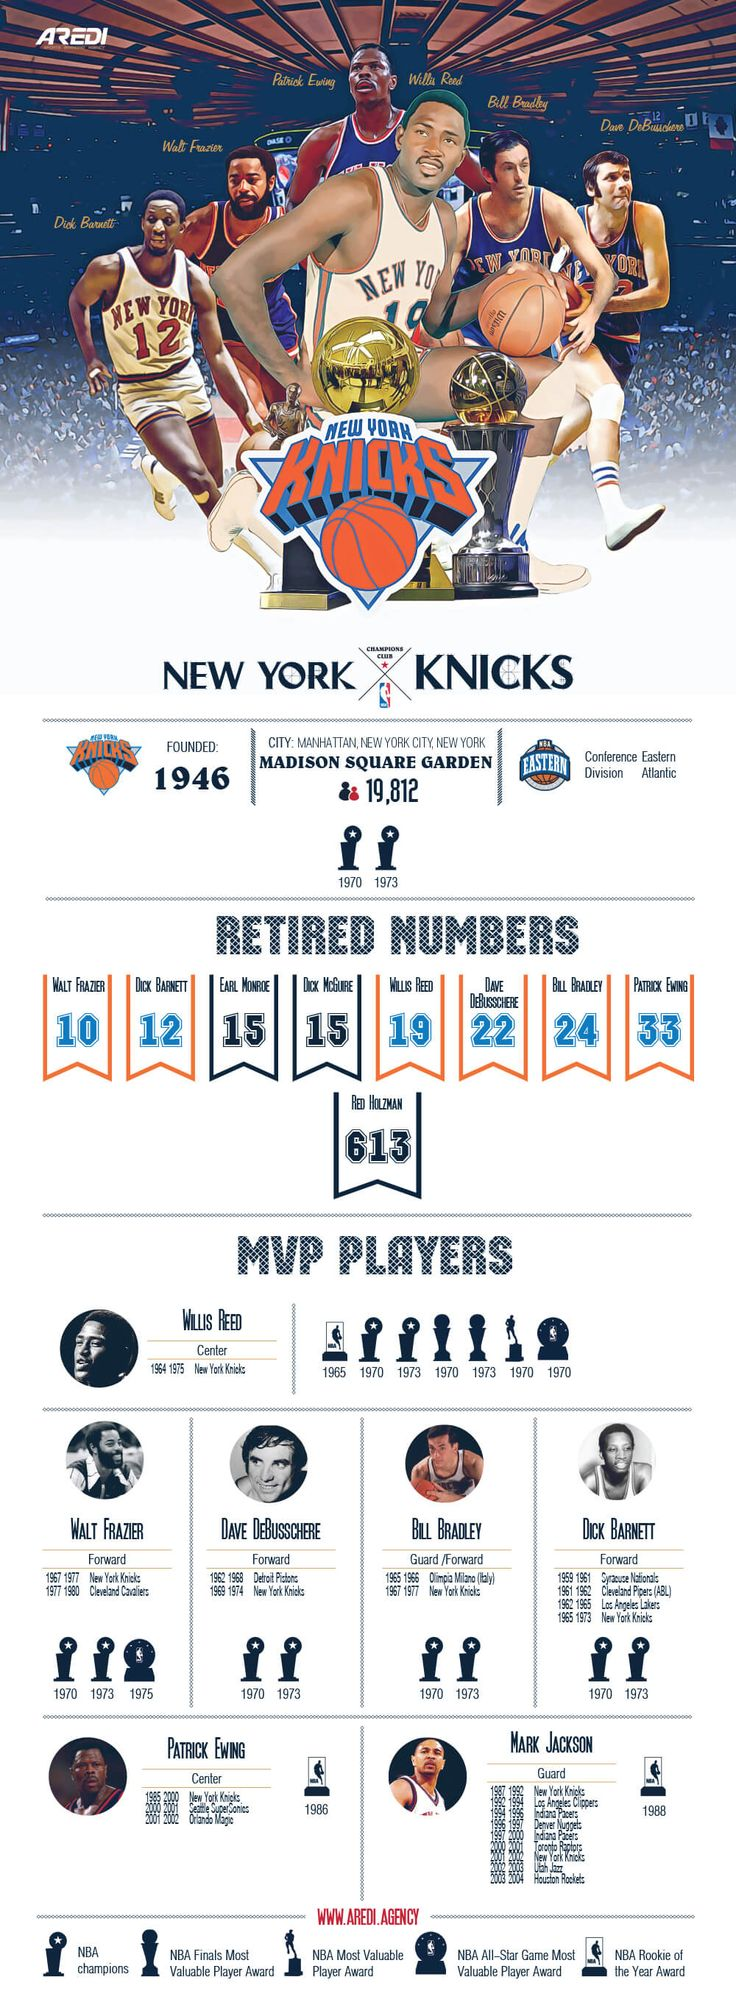 New York Knicks, Knicks, infographic, art, sport, create, design, basketball, club, champion, branding, NBA, MVP legends, histoty, All Star game, NBA Rookie of the Year, Walt Frazier, Dick Barnett, Patrick Ewing, Willis Reed, Bill Bradley, Dave DeBusschere, AREDI, #sportaredi